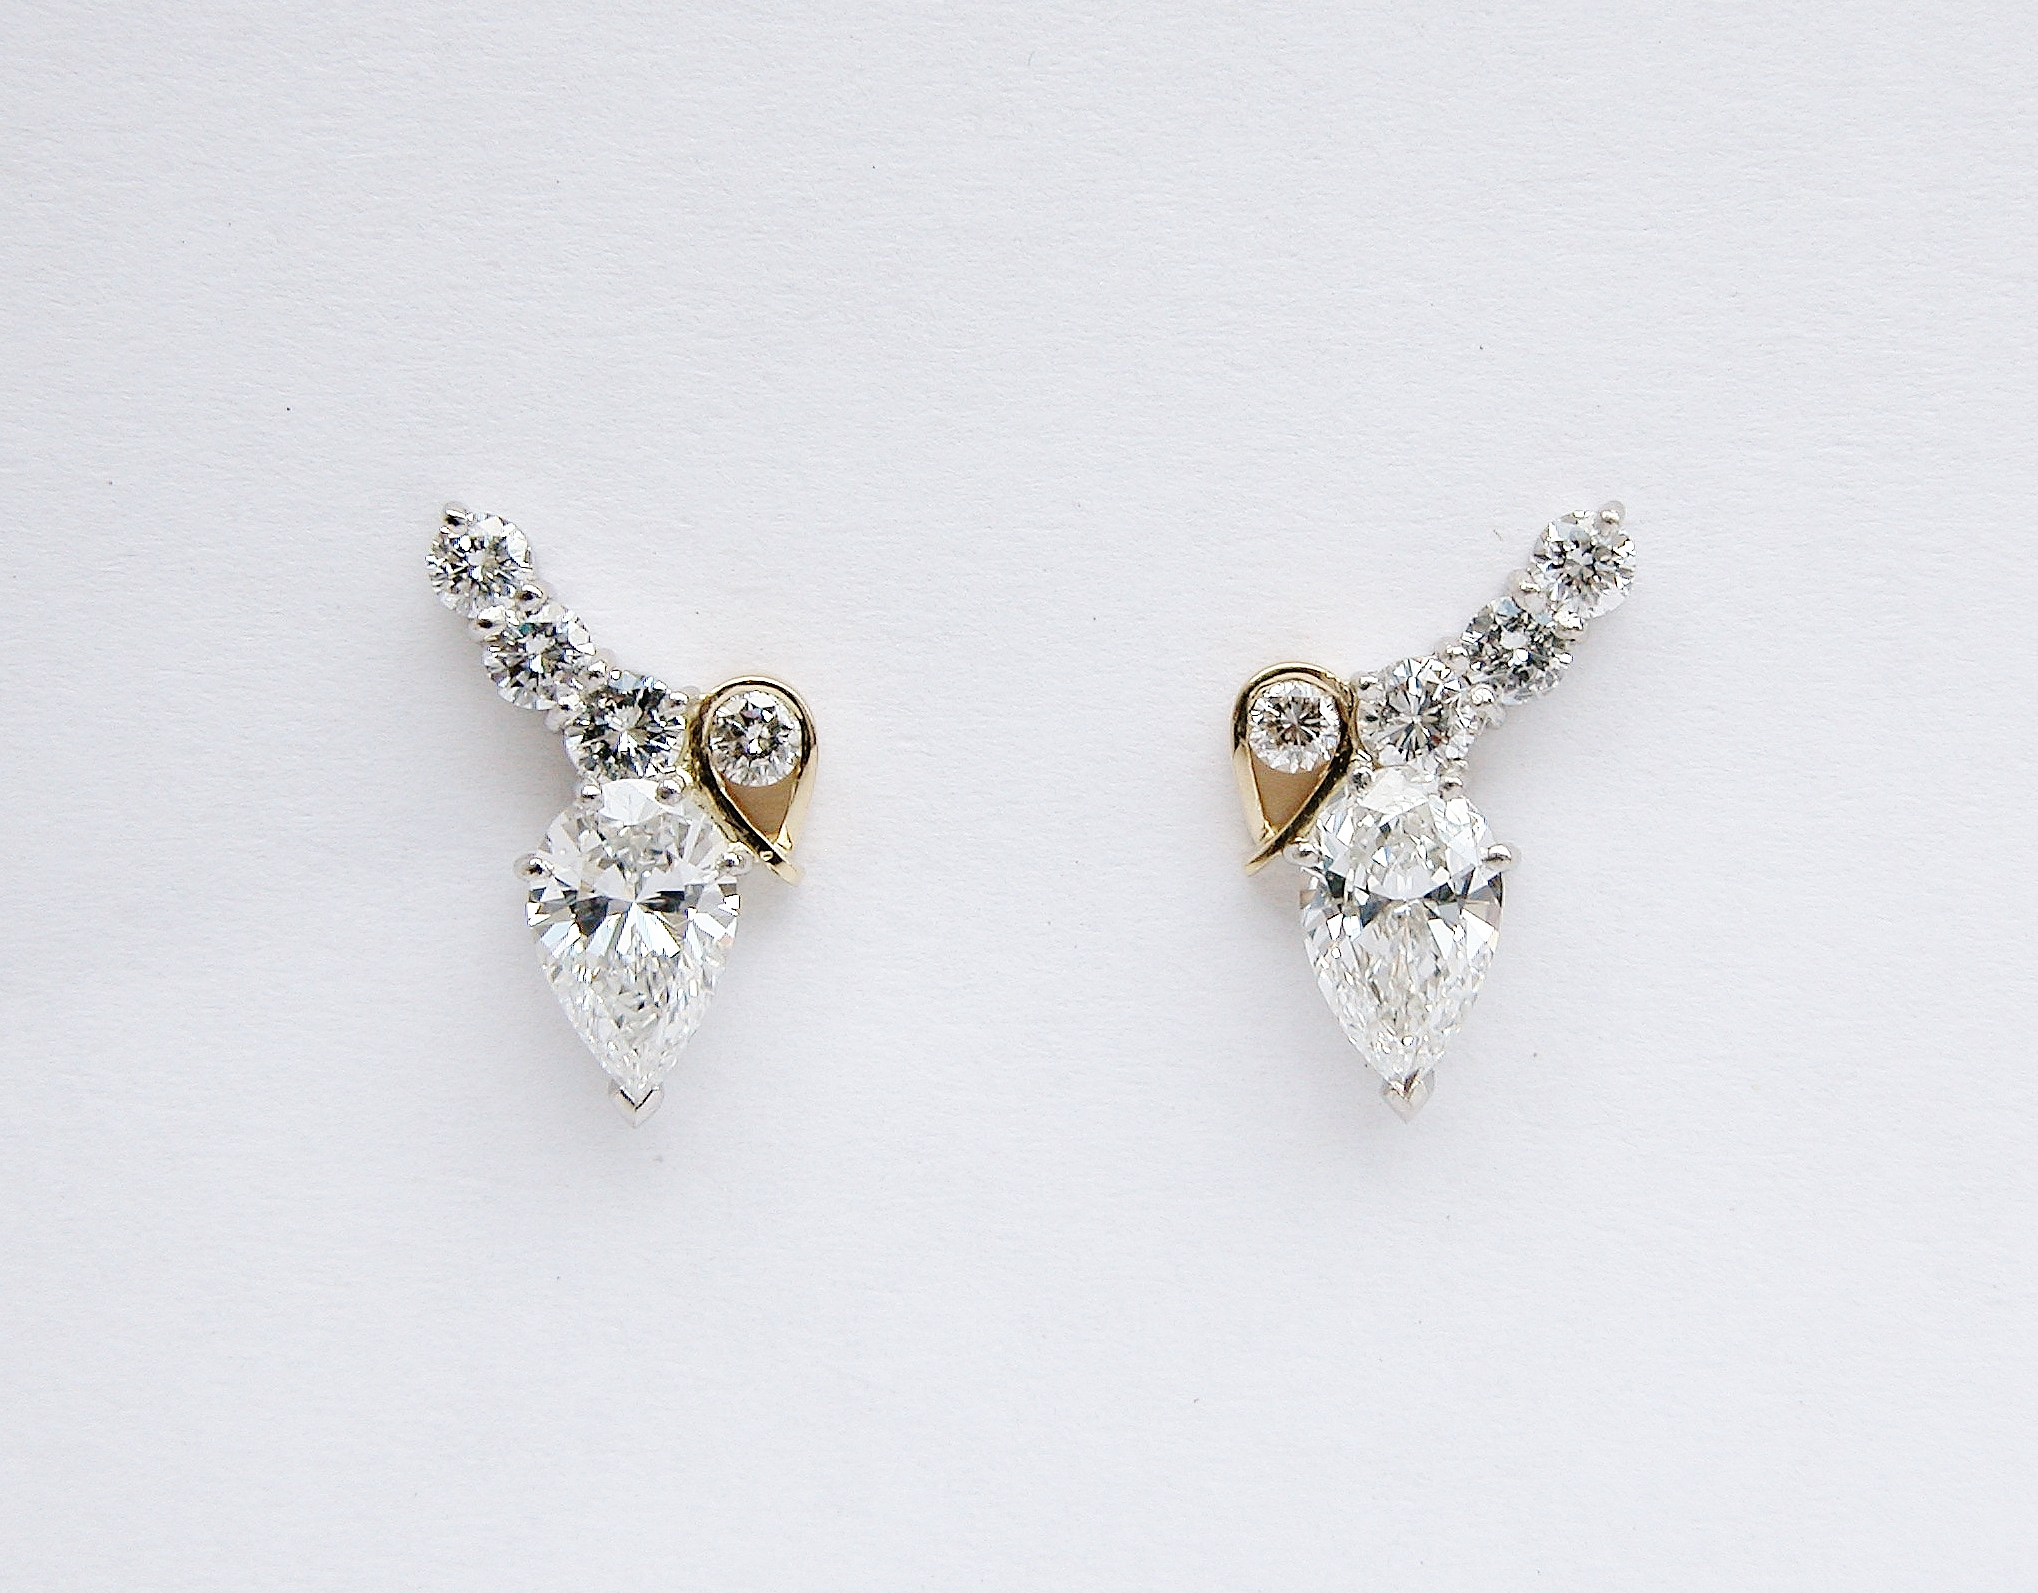 Platinum & 18ct yellow gold pear shaped diamond & round brilliant cut diamond 5 stone stud earrings.